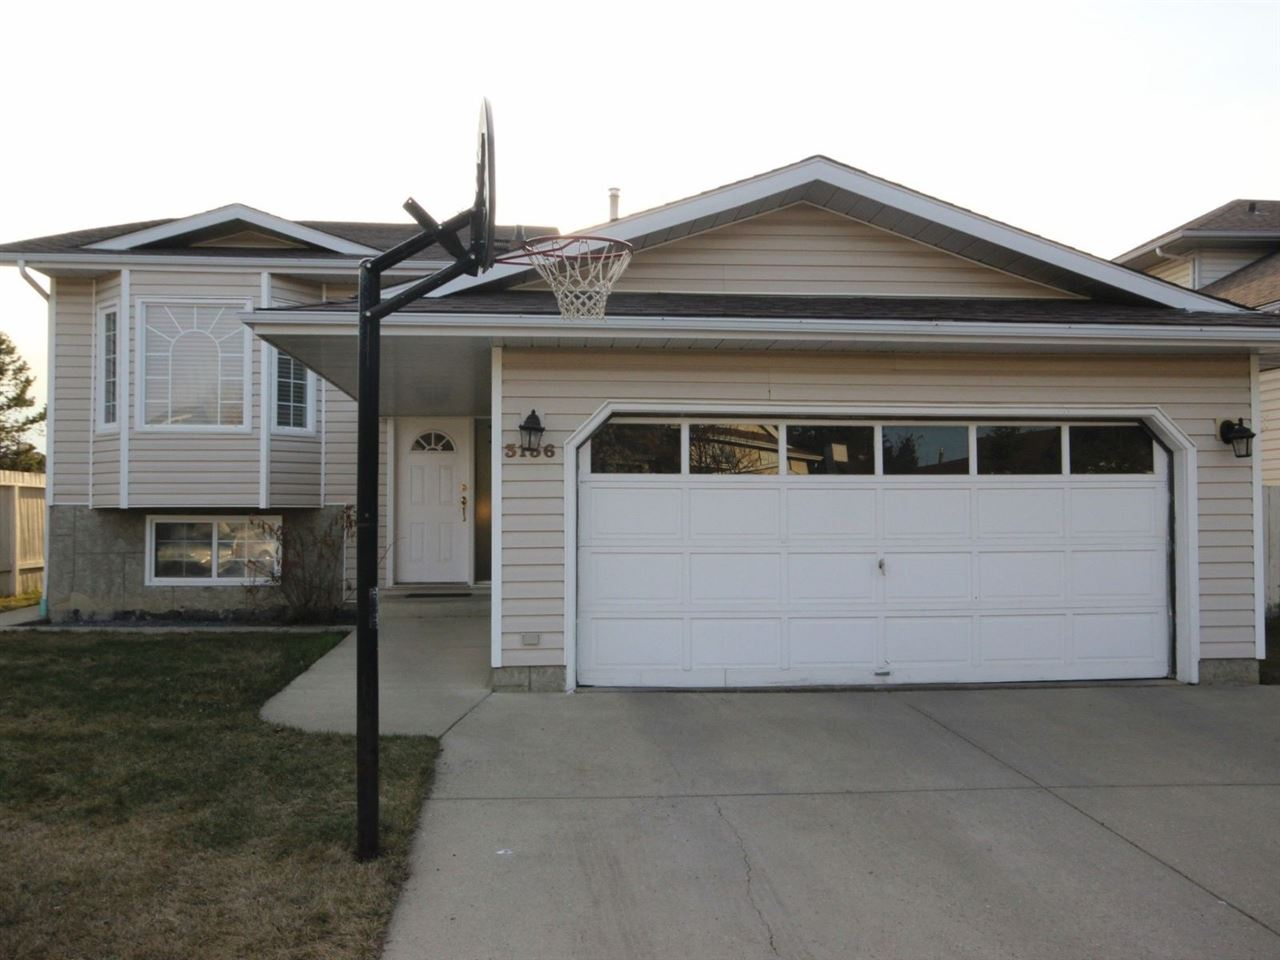 Main Photo: 3136 49A Street in Edmonton: Zone 29 House for sale : MLS(r) # E4061572